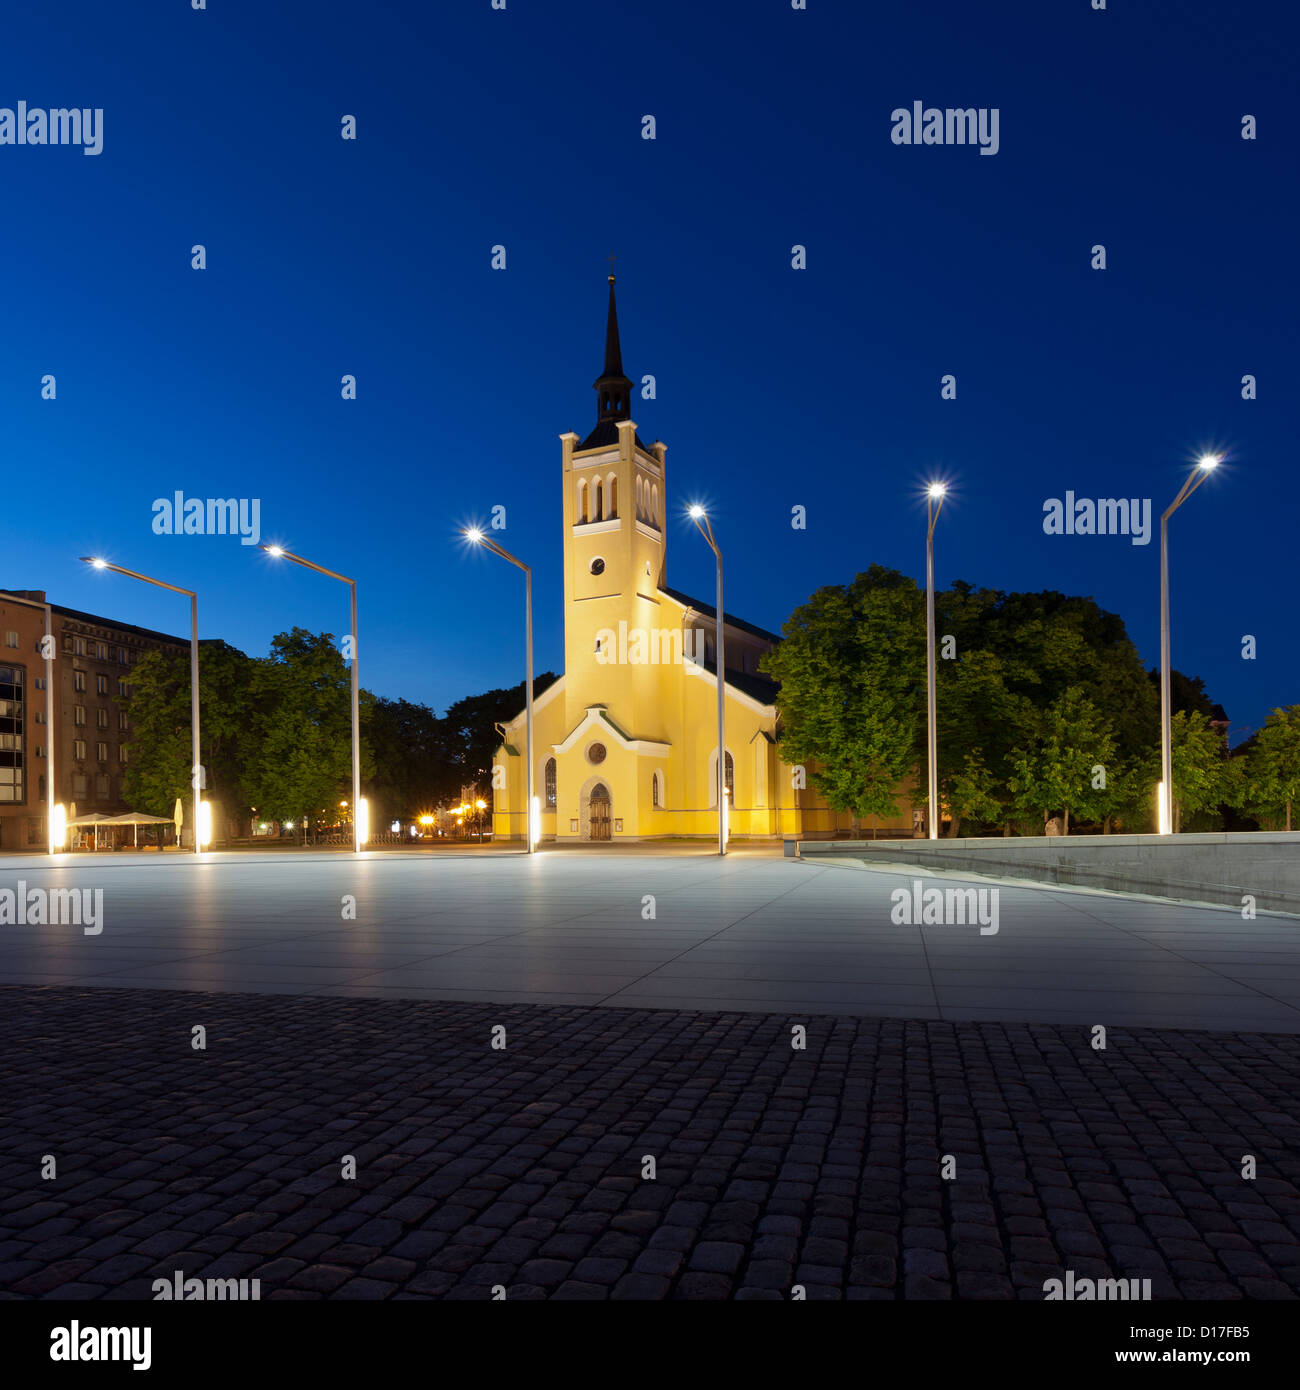 Church overlooking town square - Stock Image